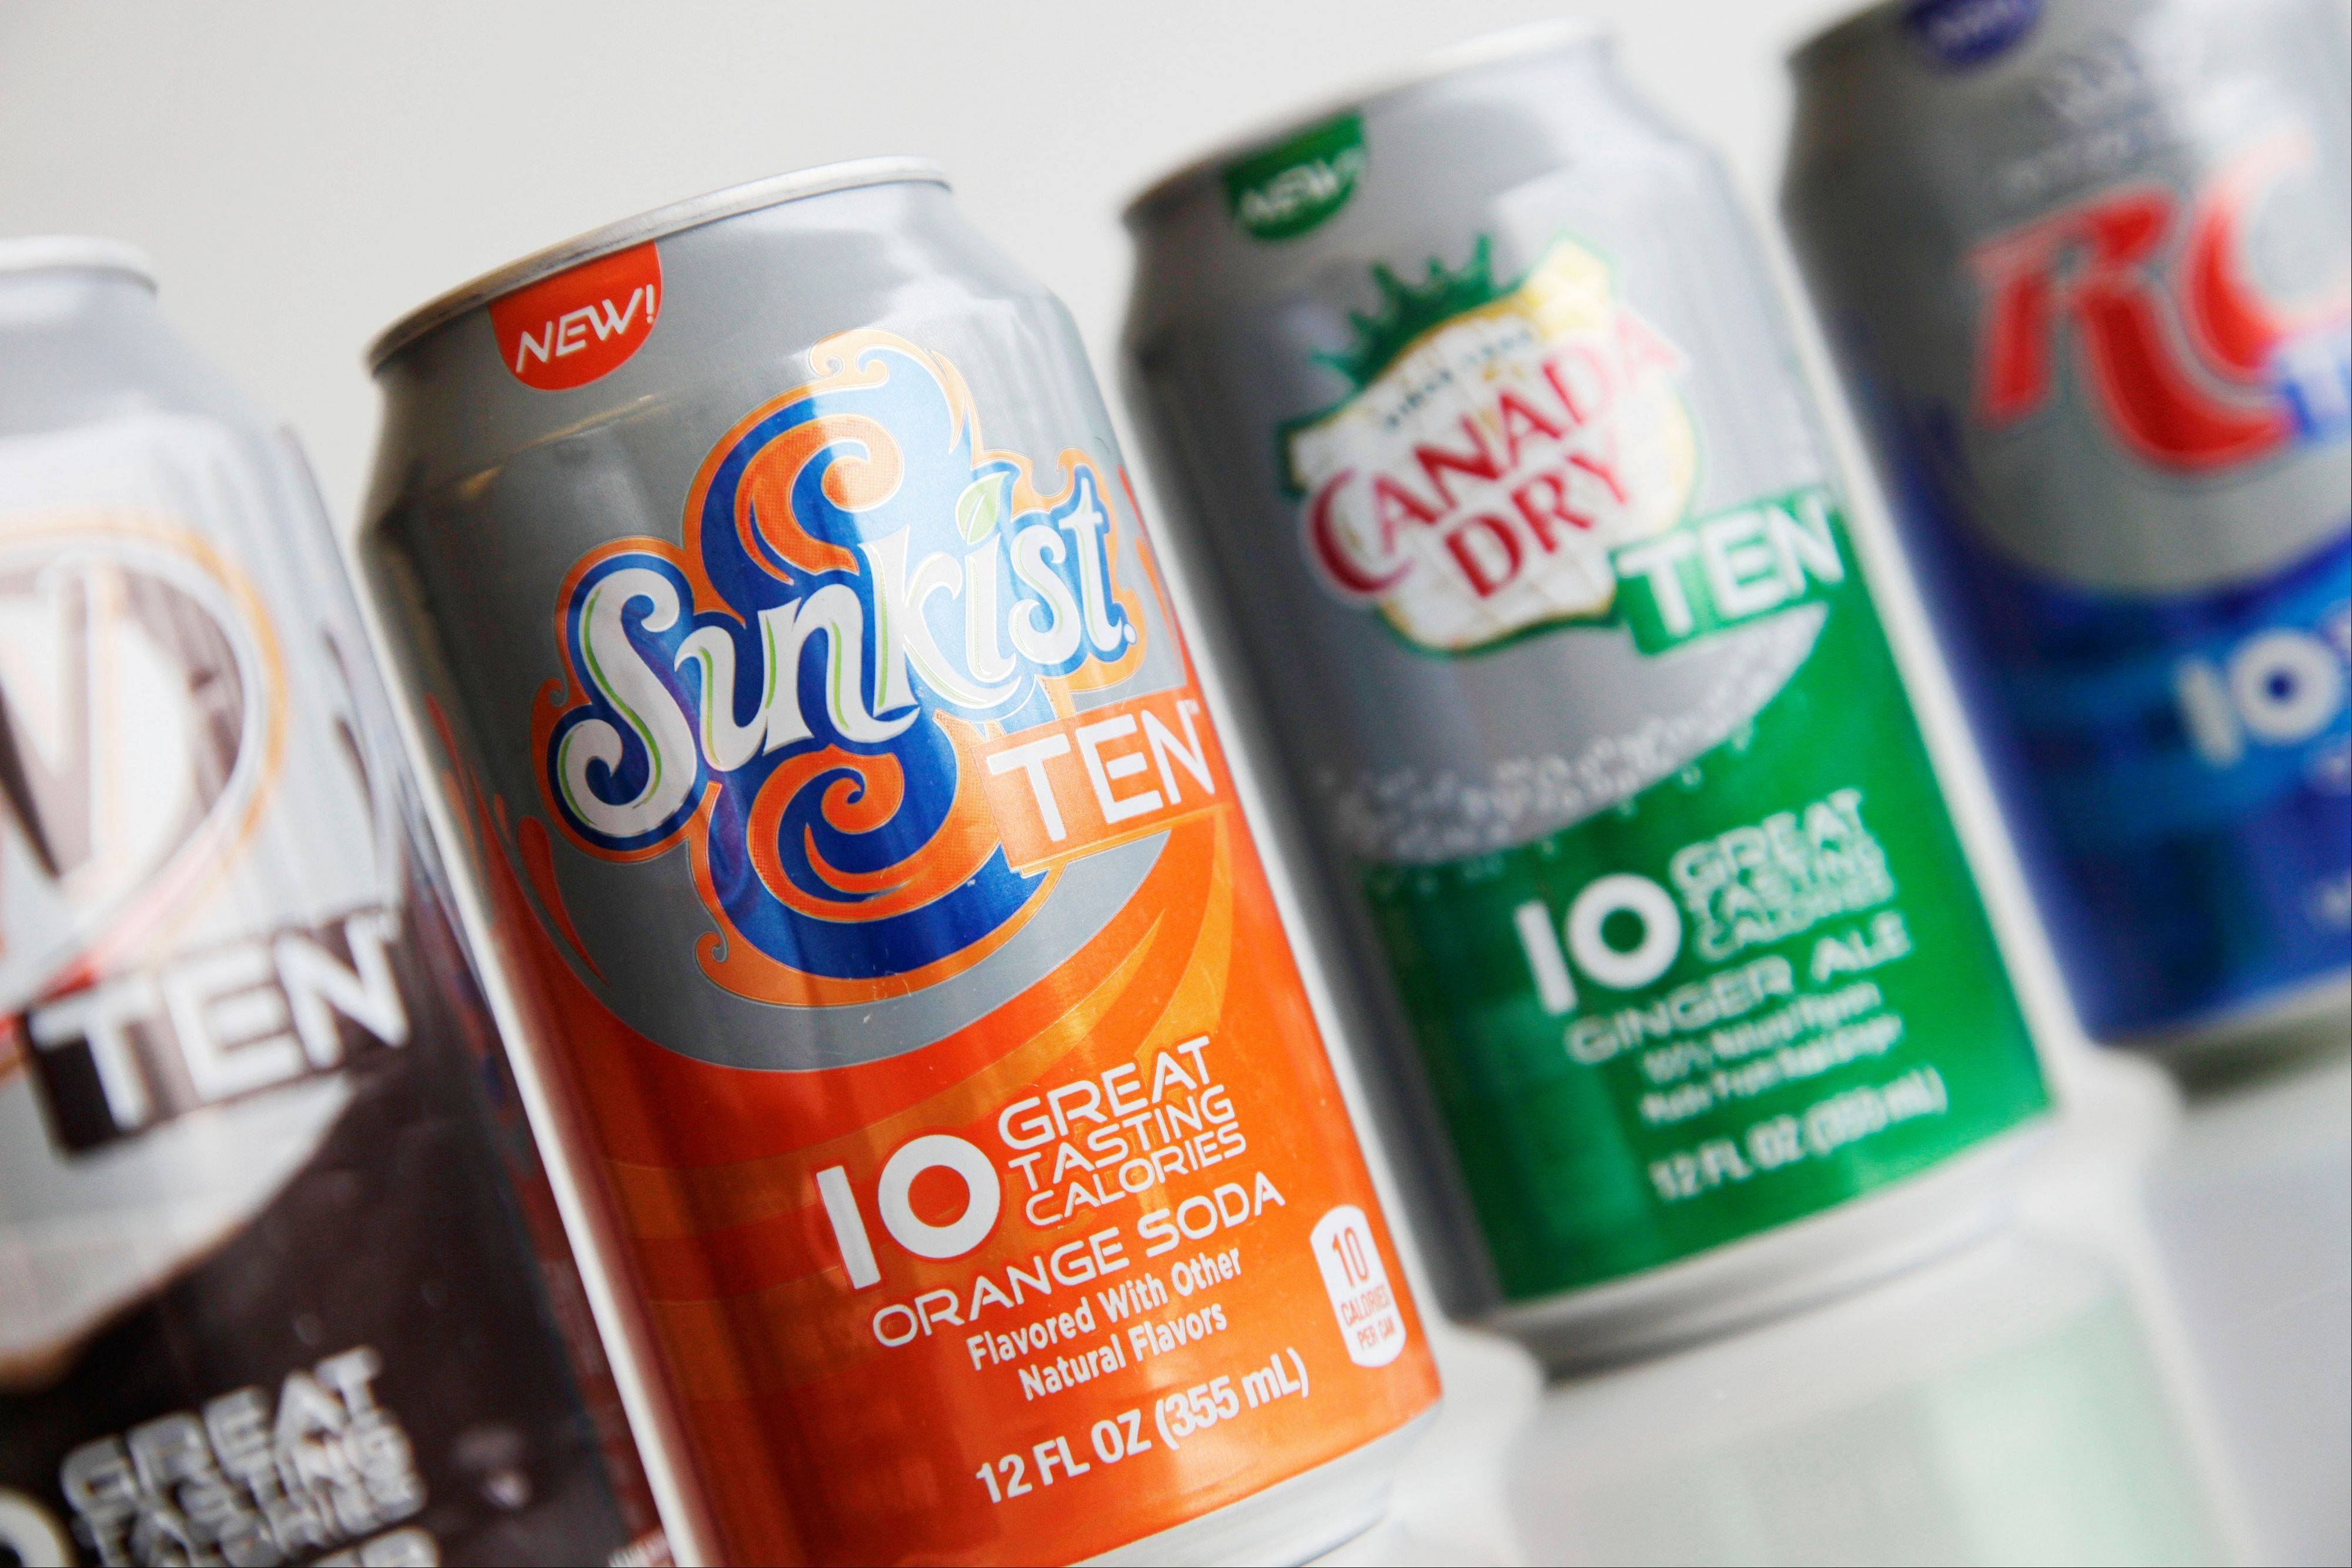 Coke and Pepsi are chasing the sweet spot: a soda with no calories, no artificial sweeteners and no funny aftertaste.